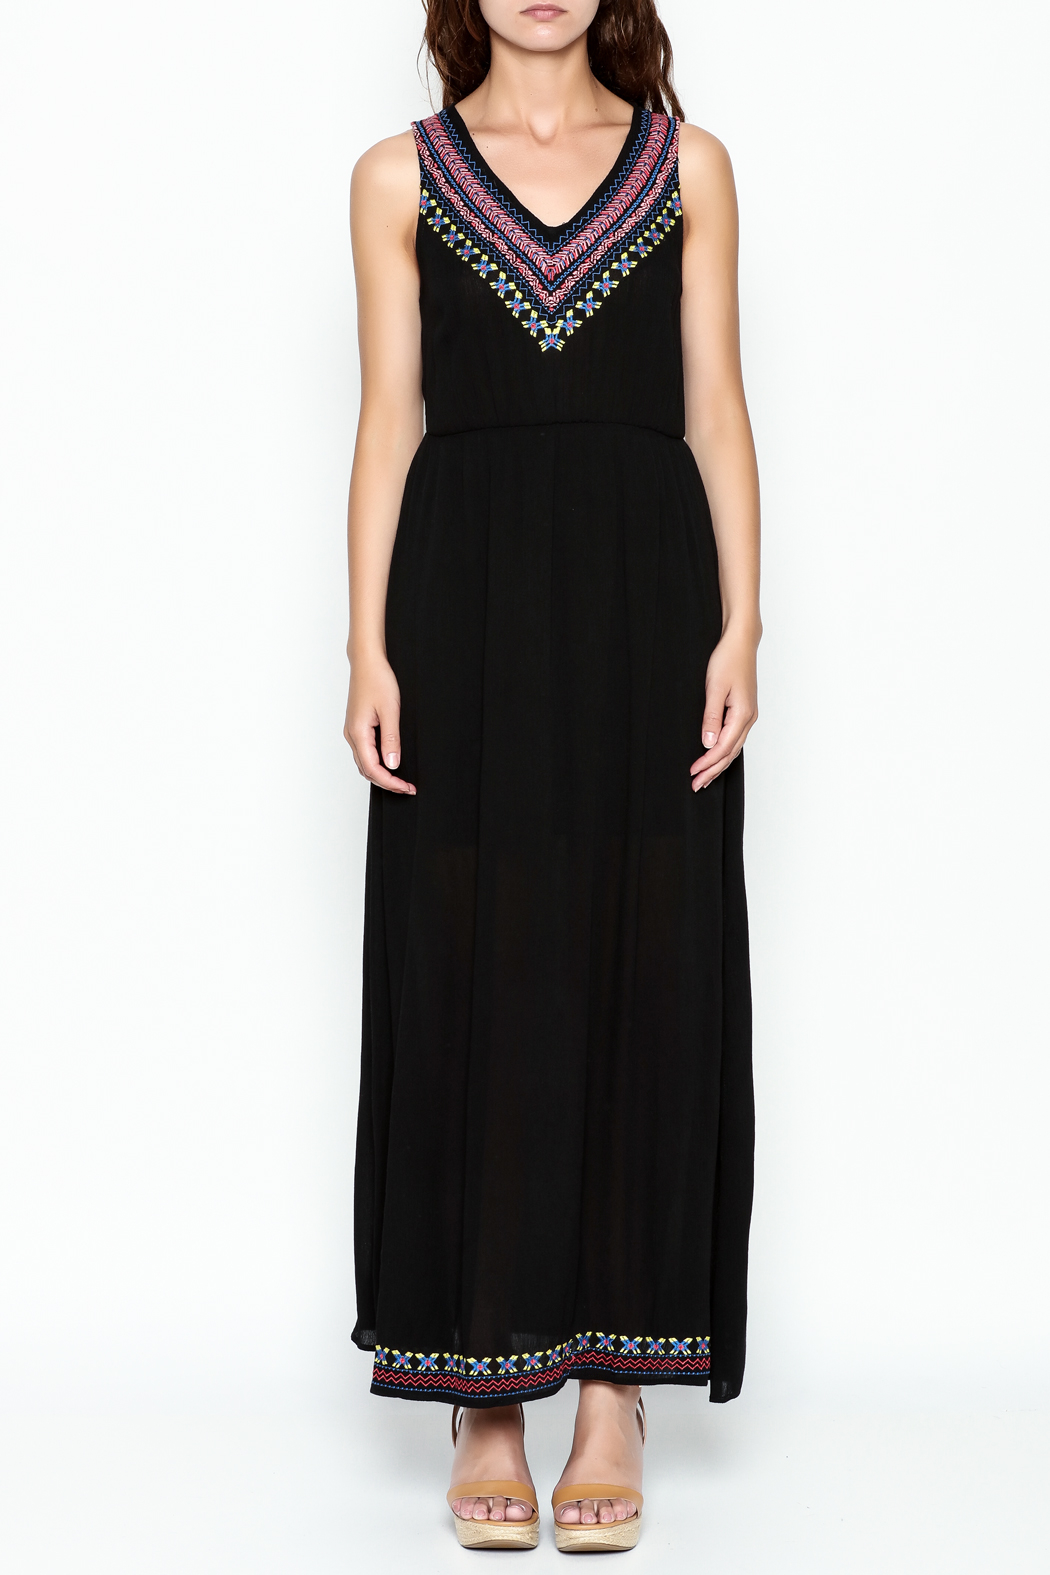 Skies Are Blue Black Maxi Dress - Front Full Image